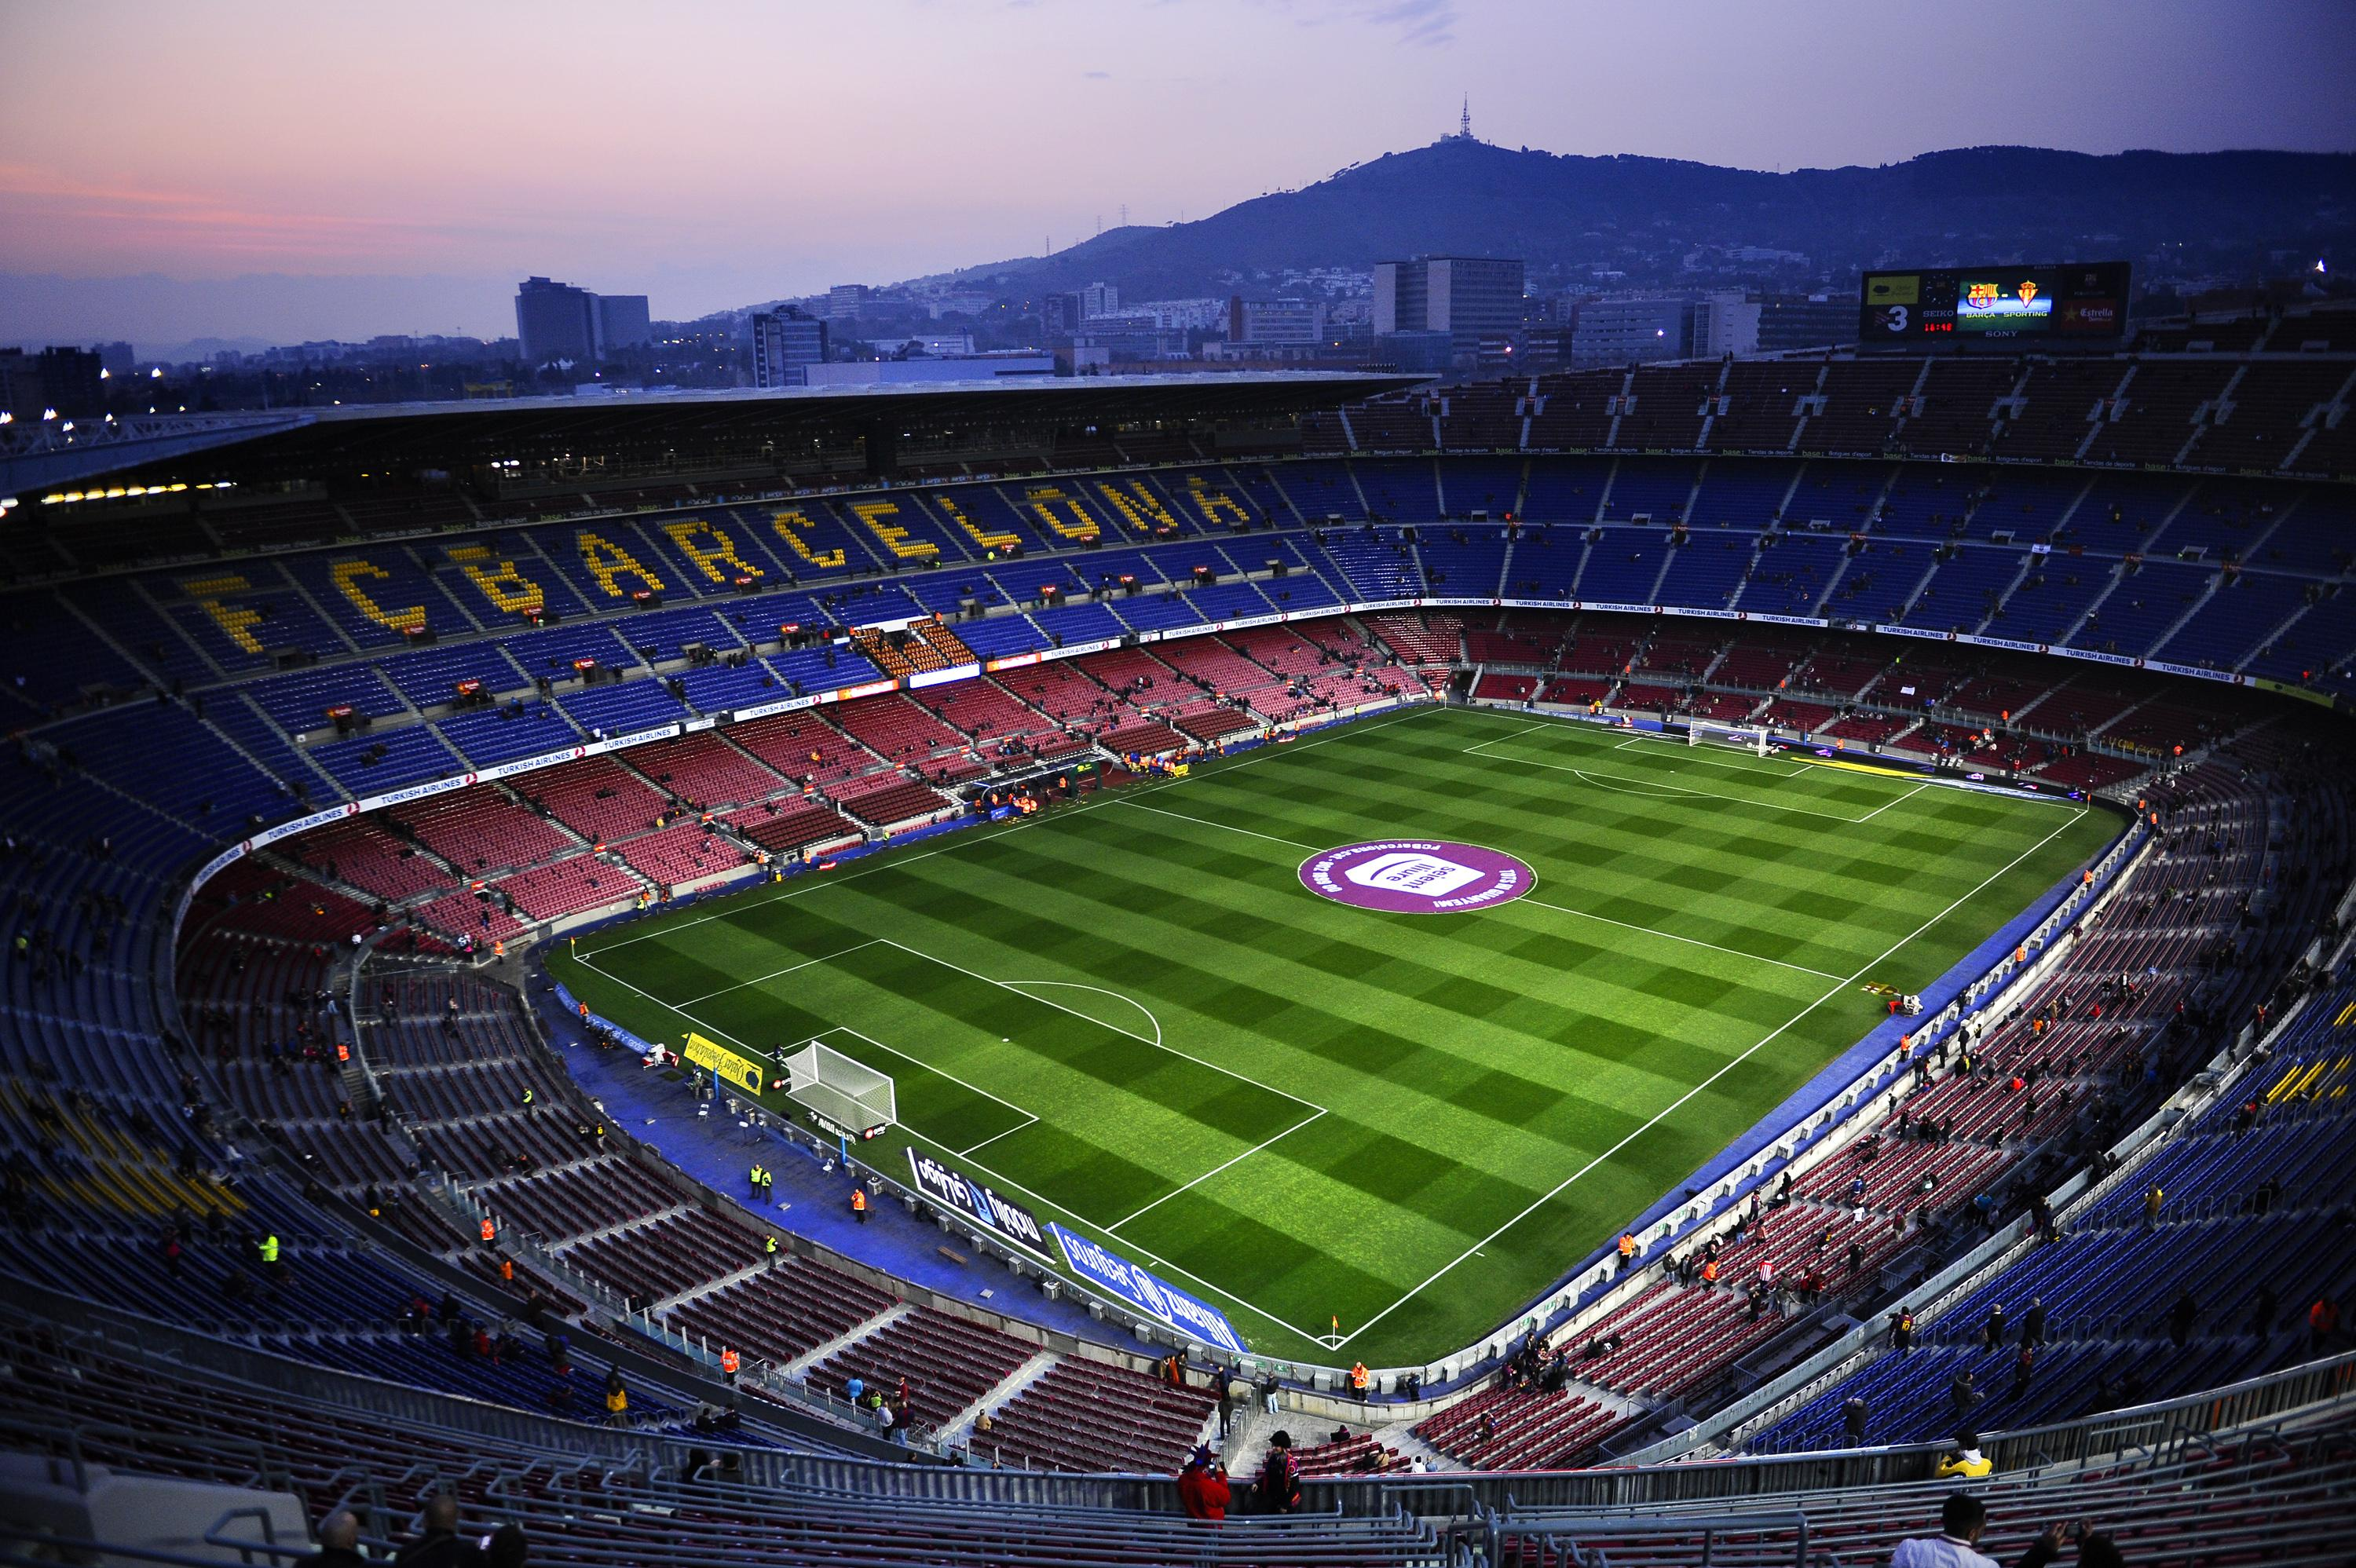 The Nou Camp looks to host the rugby league clash between Wigan and Catalans